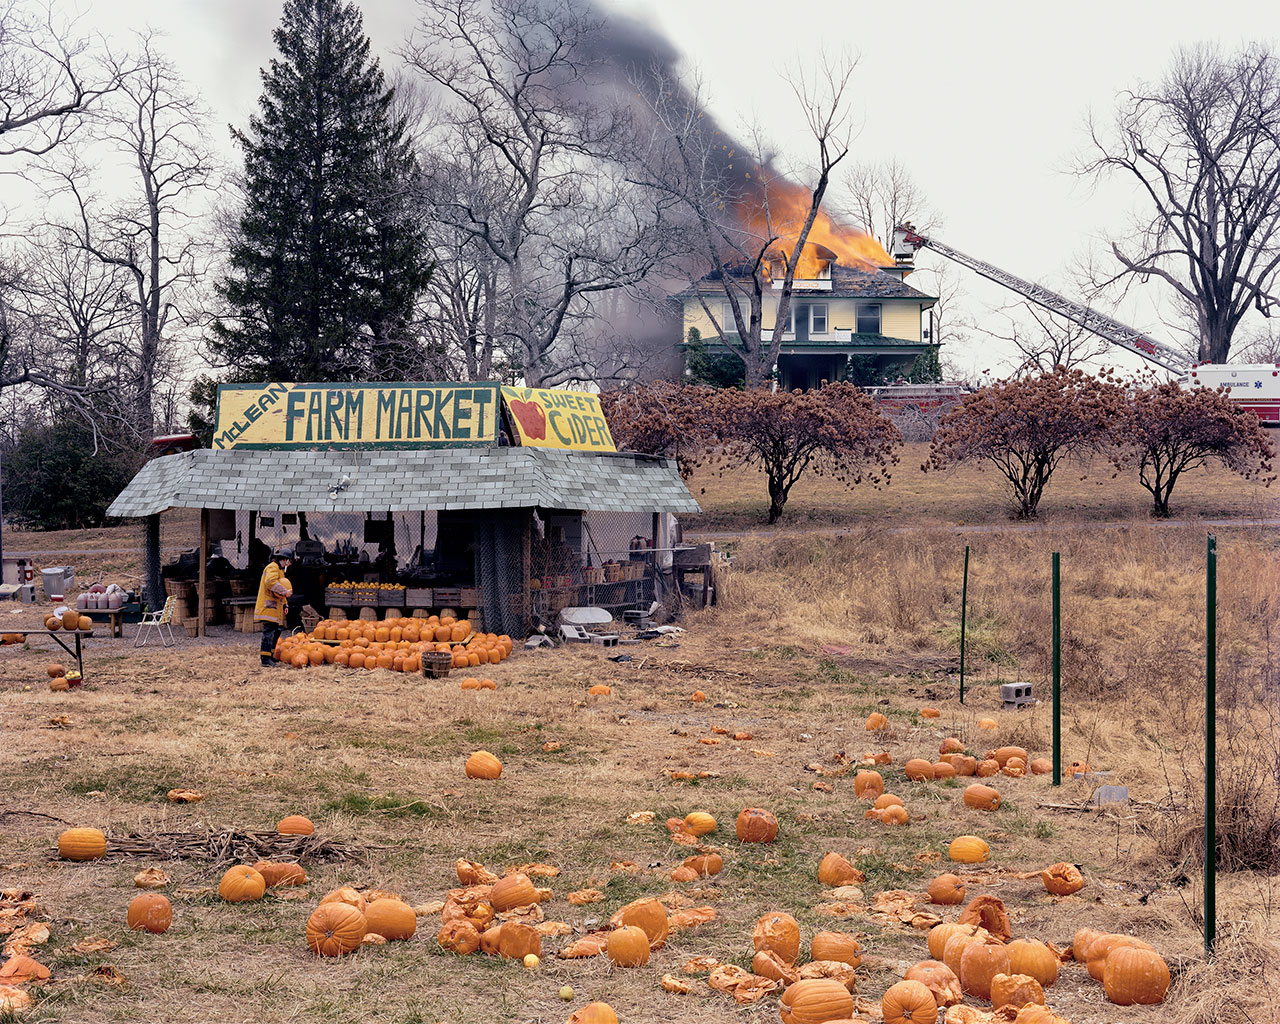 Joel Sternfeld, McLean, Virginia, December 1978, 1978 (printed 2003). Digital c-print, Edition of 10 + 2 AP, 106.7 x 133.3 cm / Paper122 x 148.6 cm / Framed 125.9 x 153 x 5.7 cm. Zabludowicz Collection © Joel Sternfeld; Courtesy of the artist and Luhring Augustine, New York.